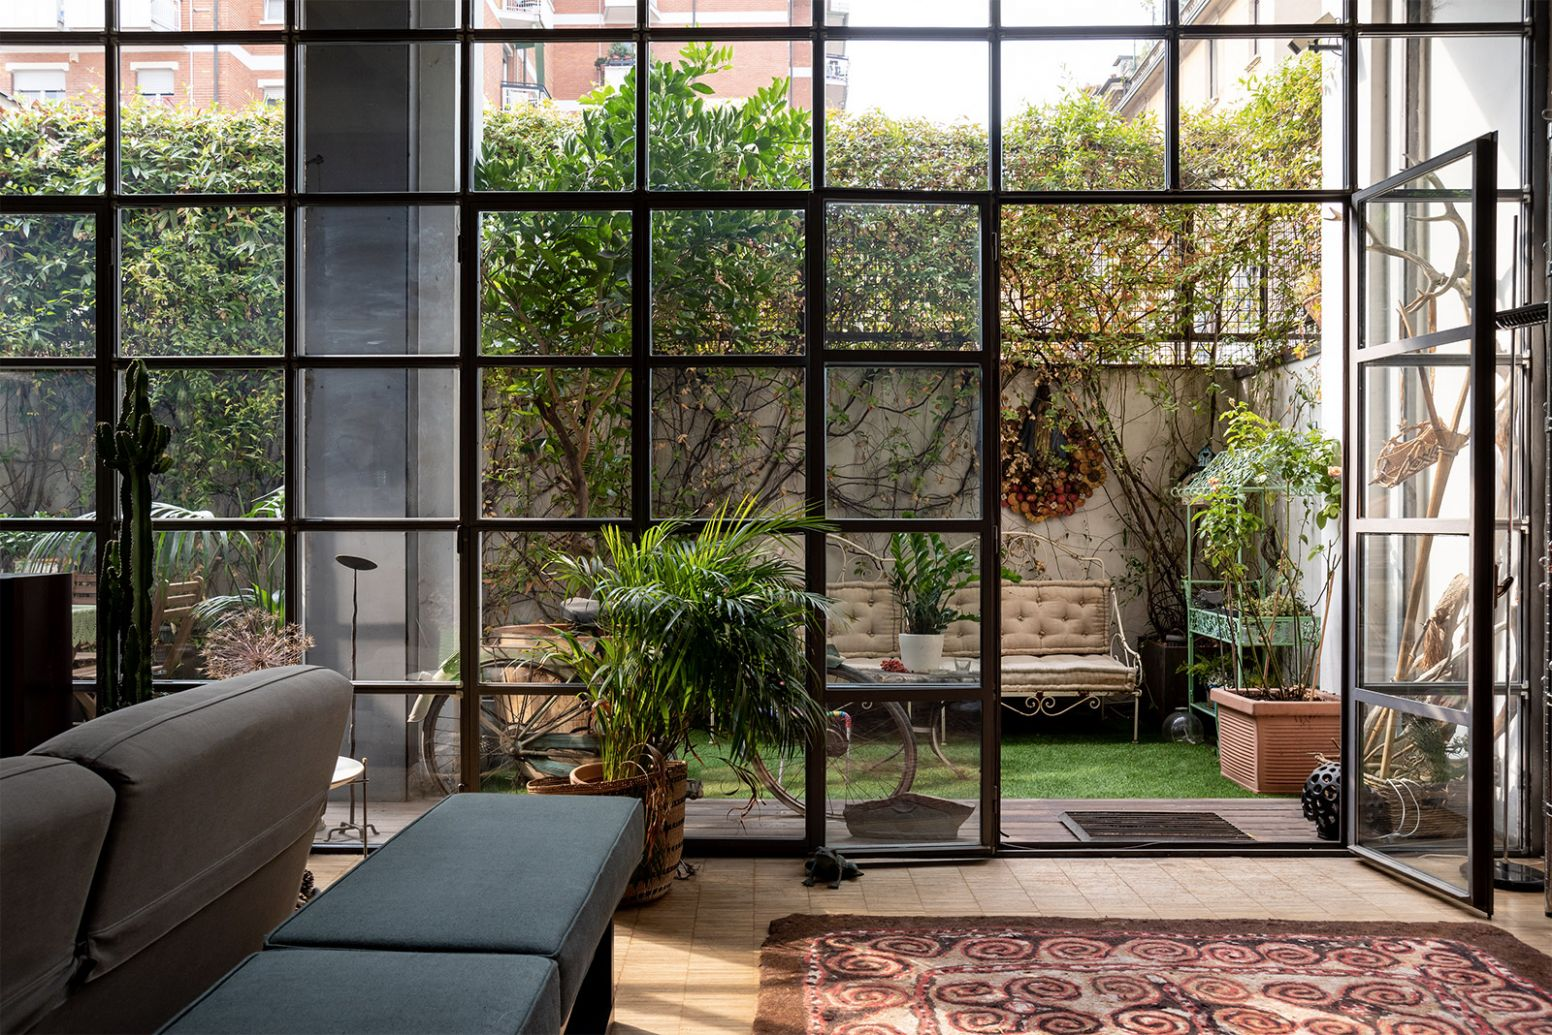 8 of the best Milan apartments you can rent - apartment design for rent